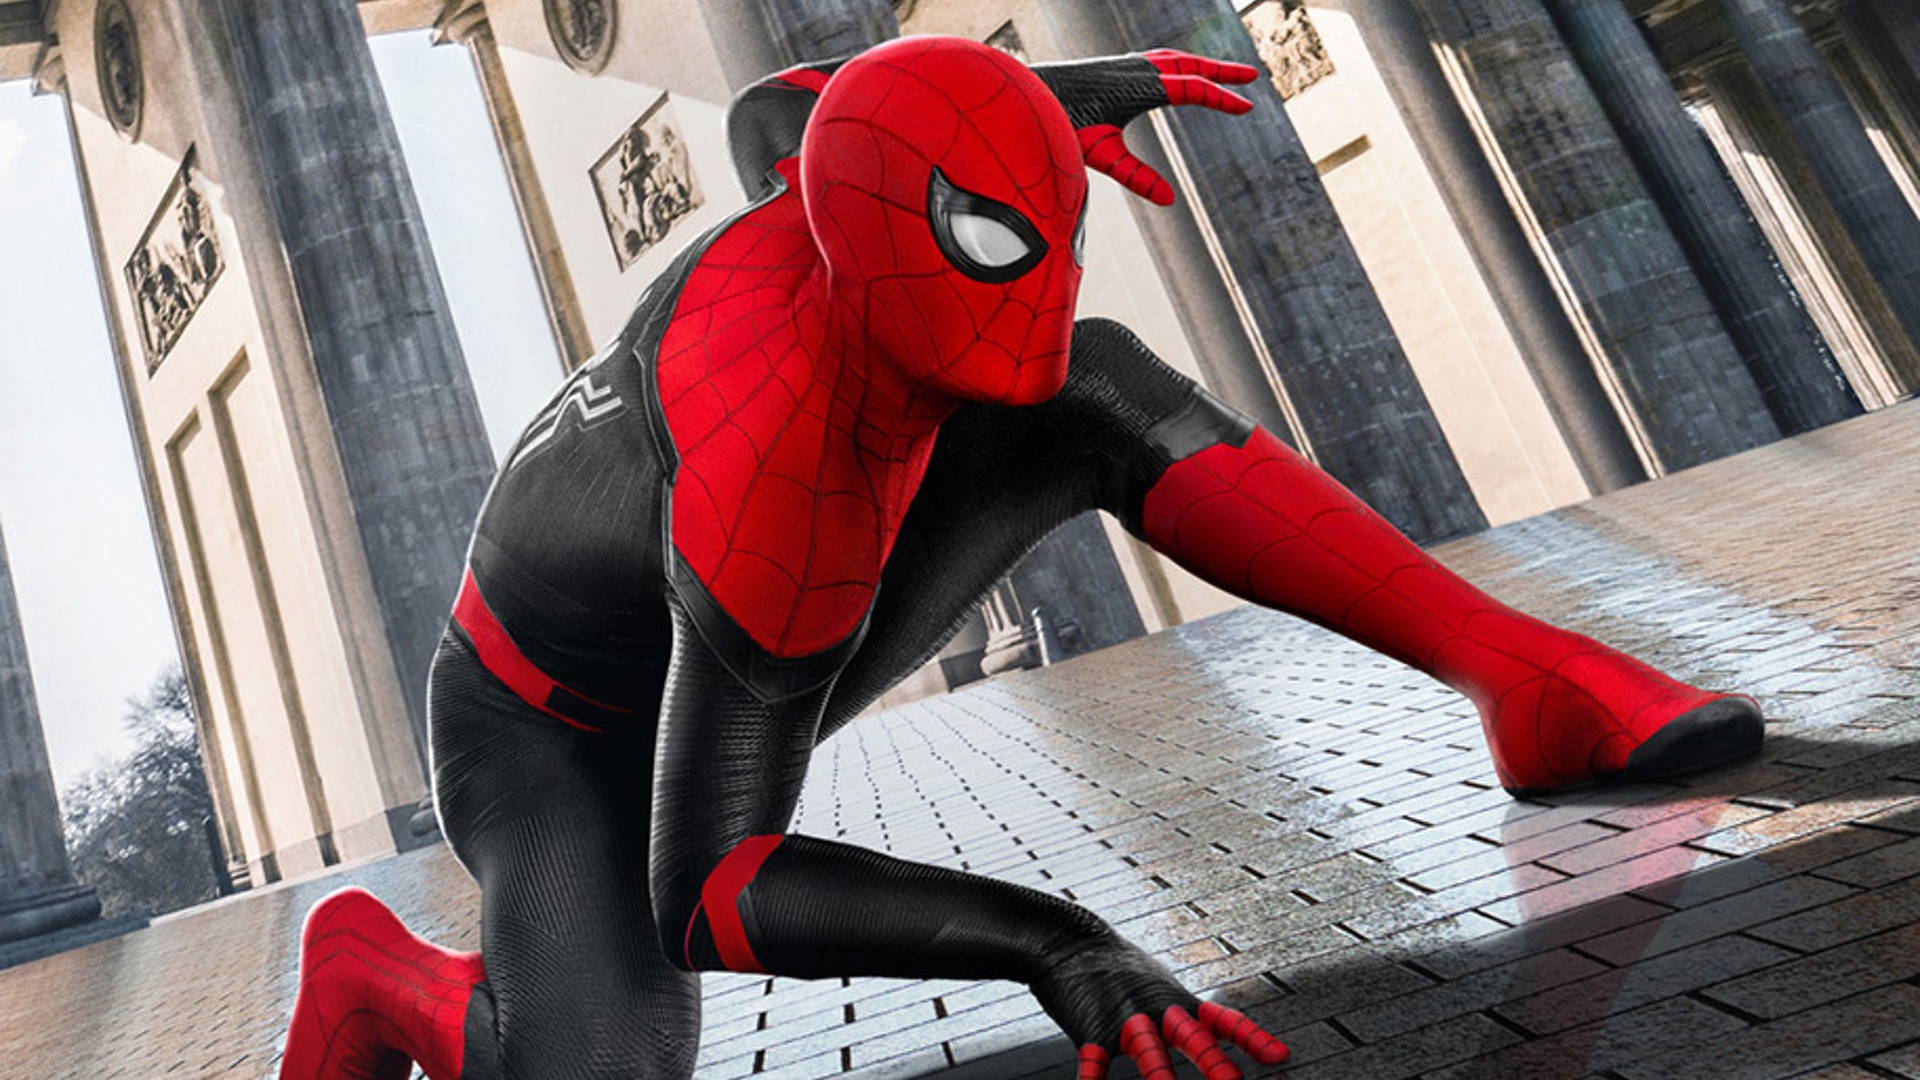 A promotional image for Marvel Studios' Spider-Man: Far From Home